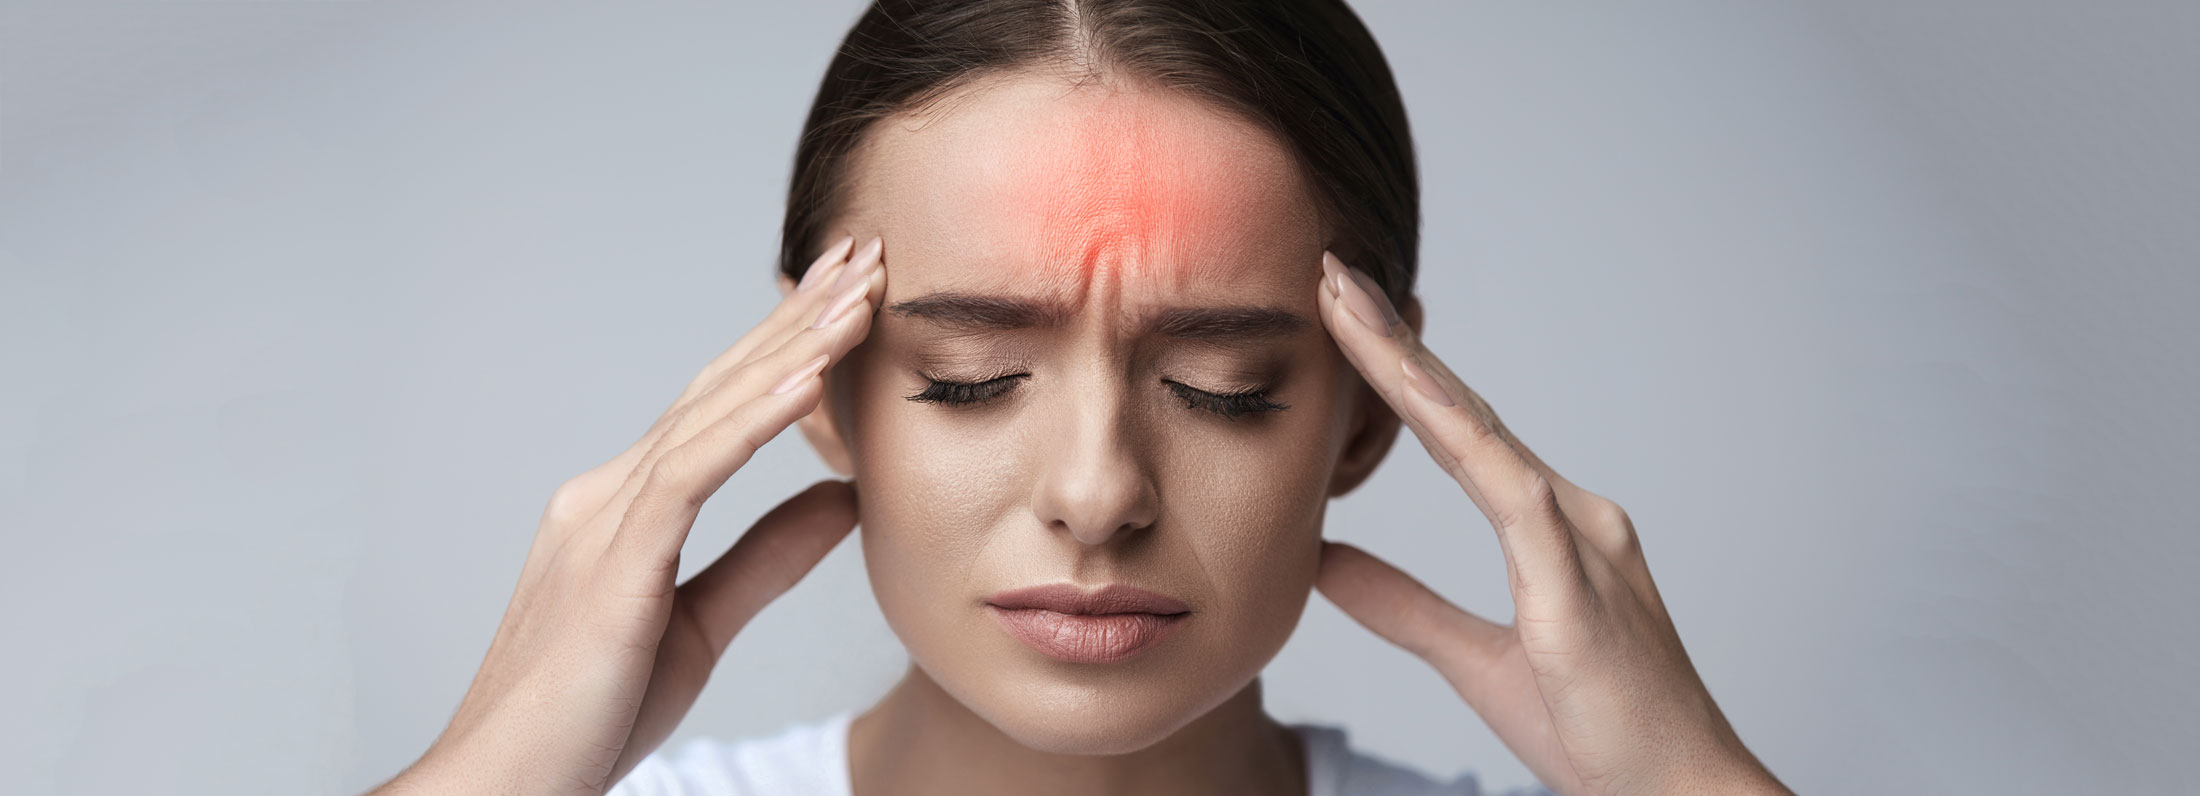 can dry needle therapy offer relief from migraines or headaches